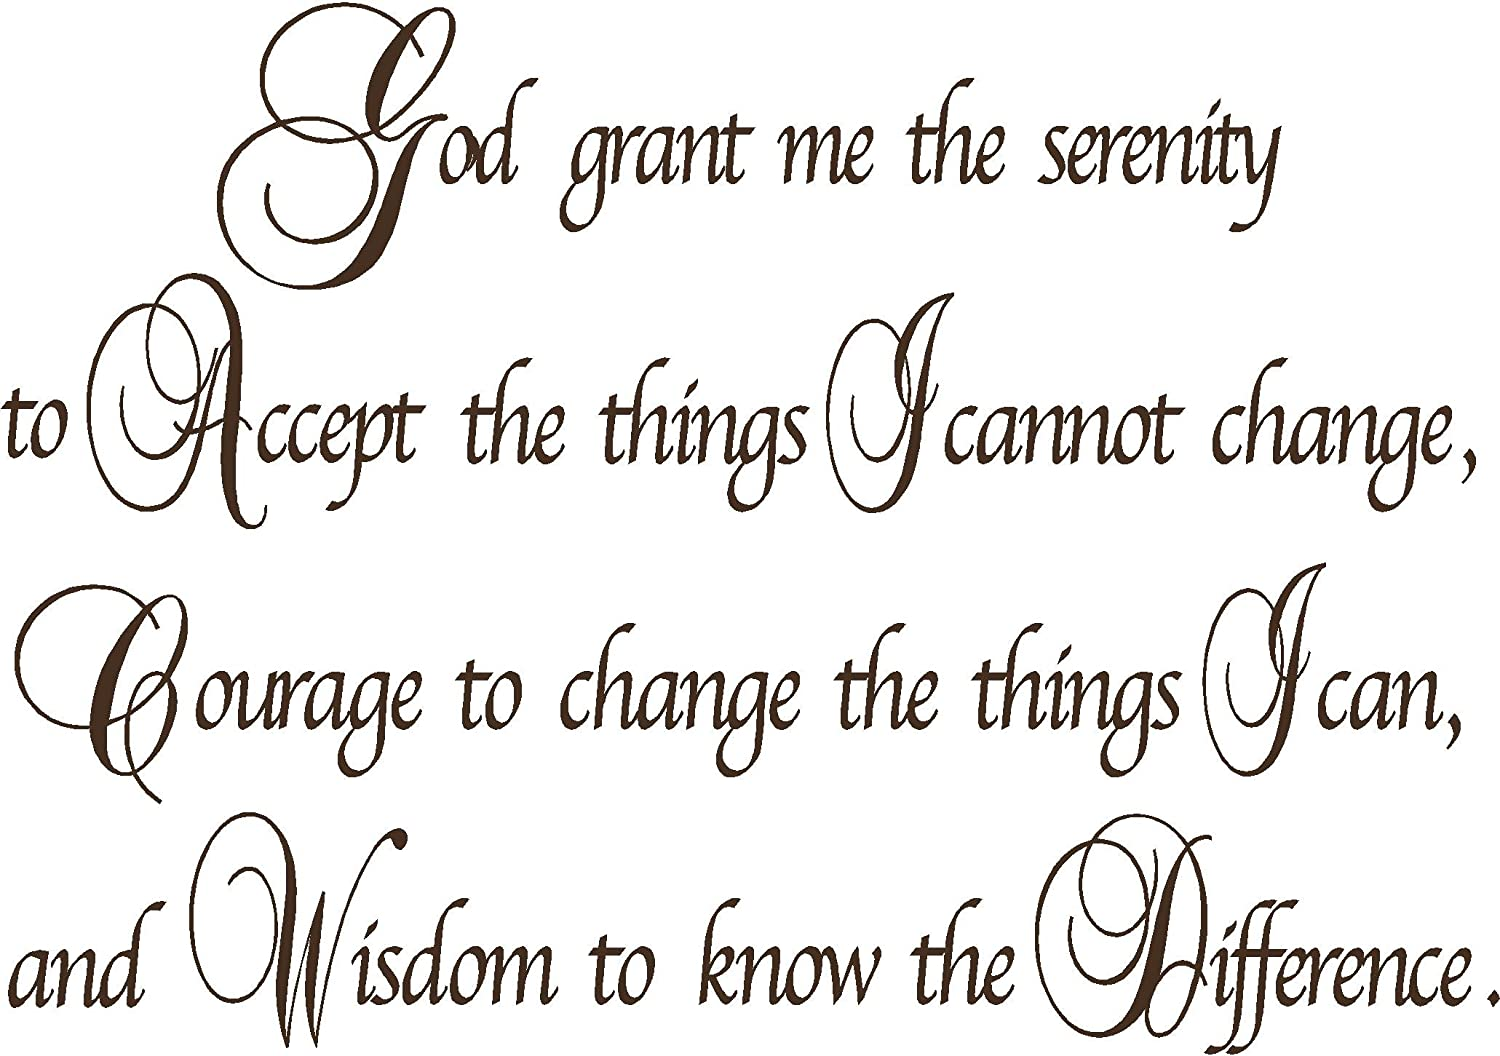 Amazon.com: Quote It! - Serenity Prayer Wall Decor Decal ...